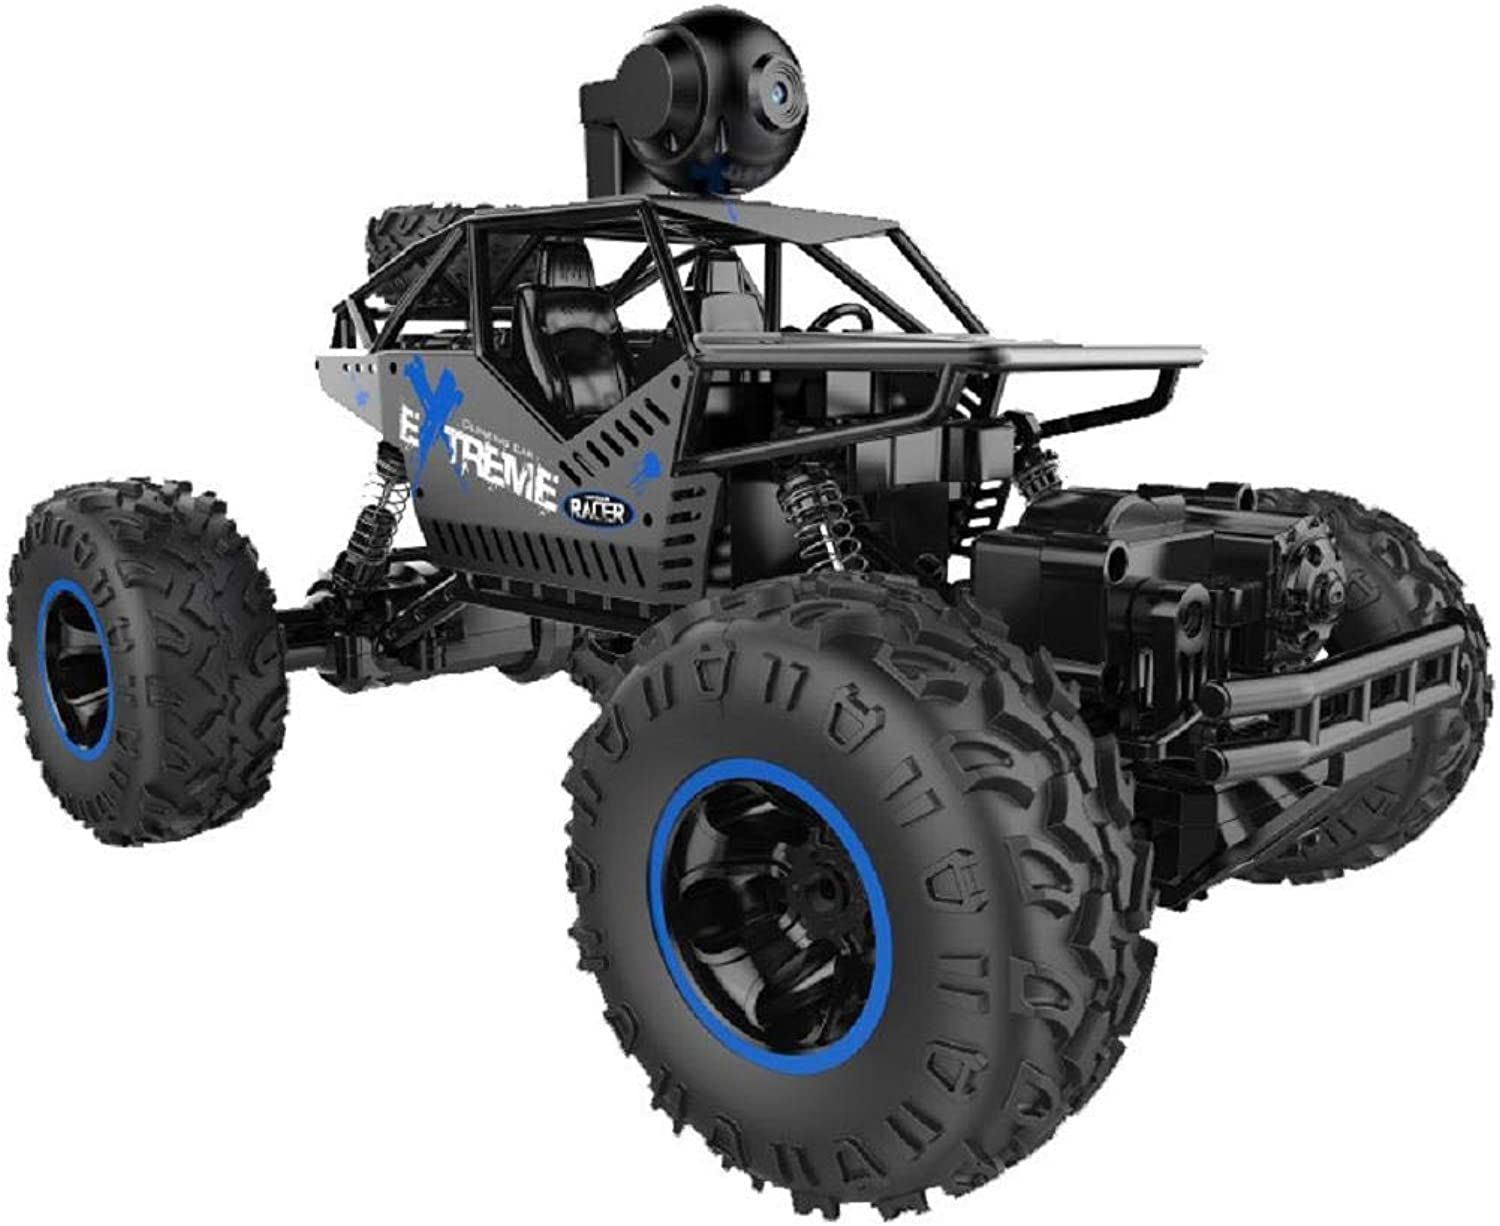 Cinhent 1 16 FourWheel Drive Alloy CrossCountry Climbing Car 90 Degree Mobile Camera Remote Control Car Toy Gift for Kids